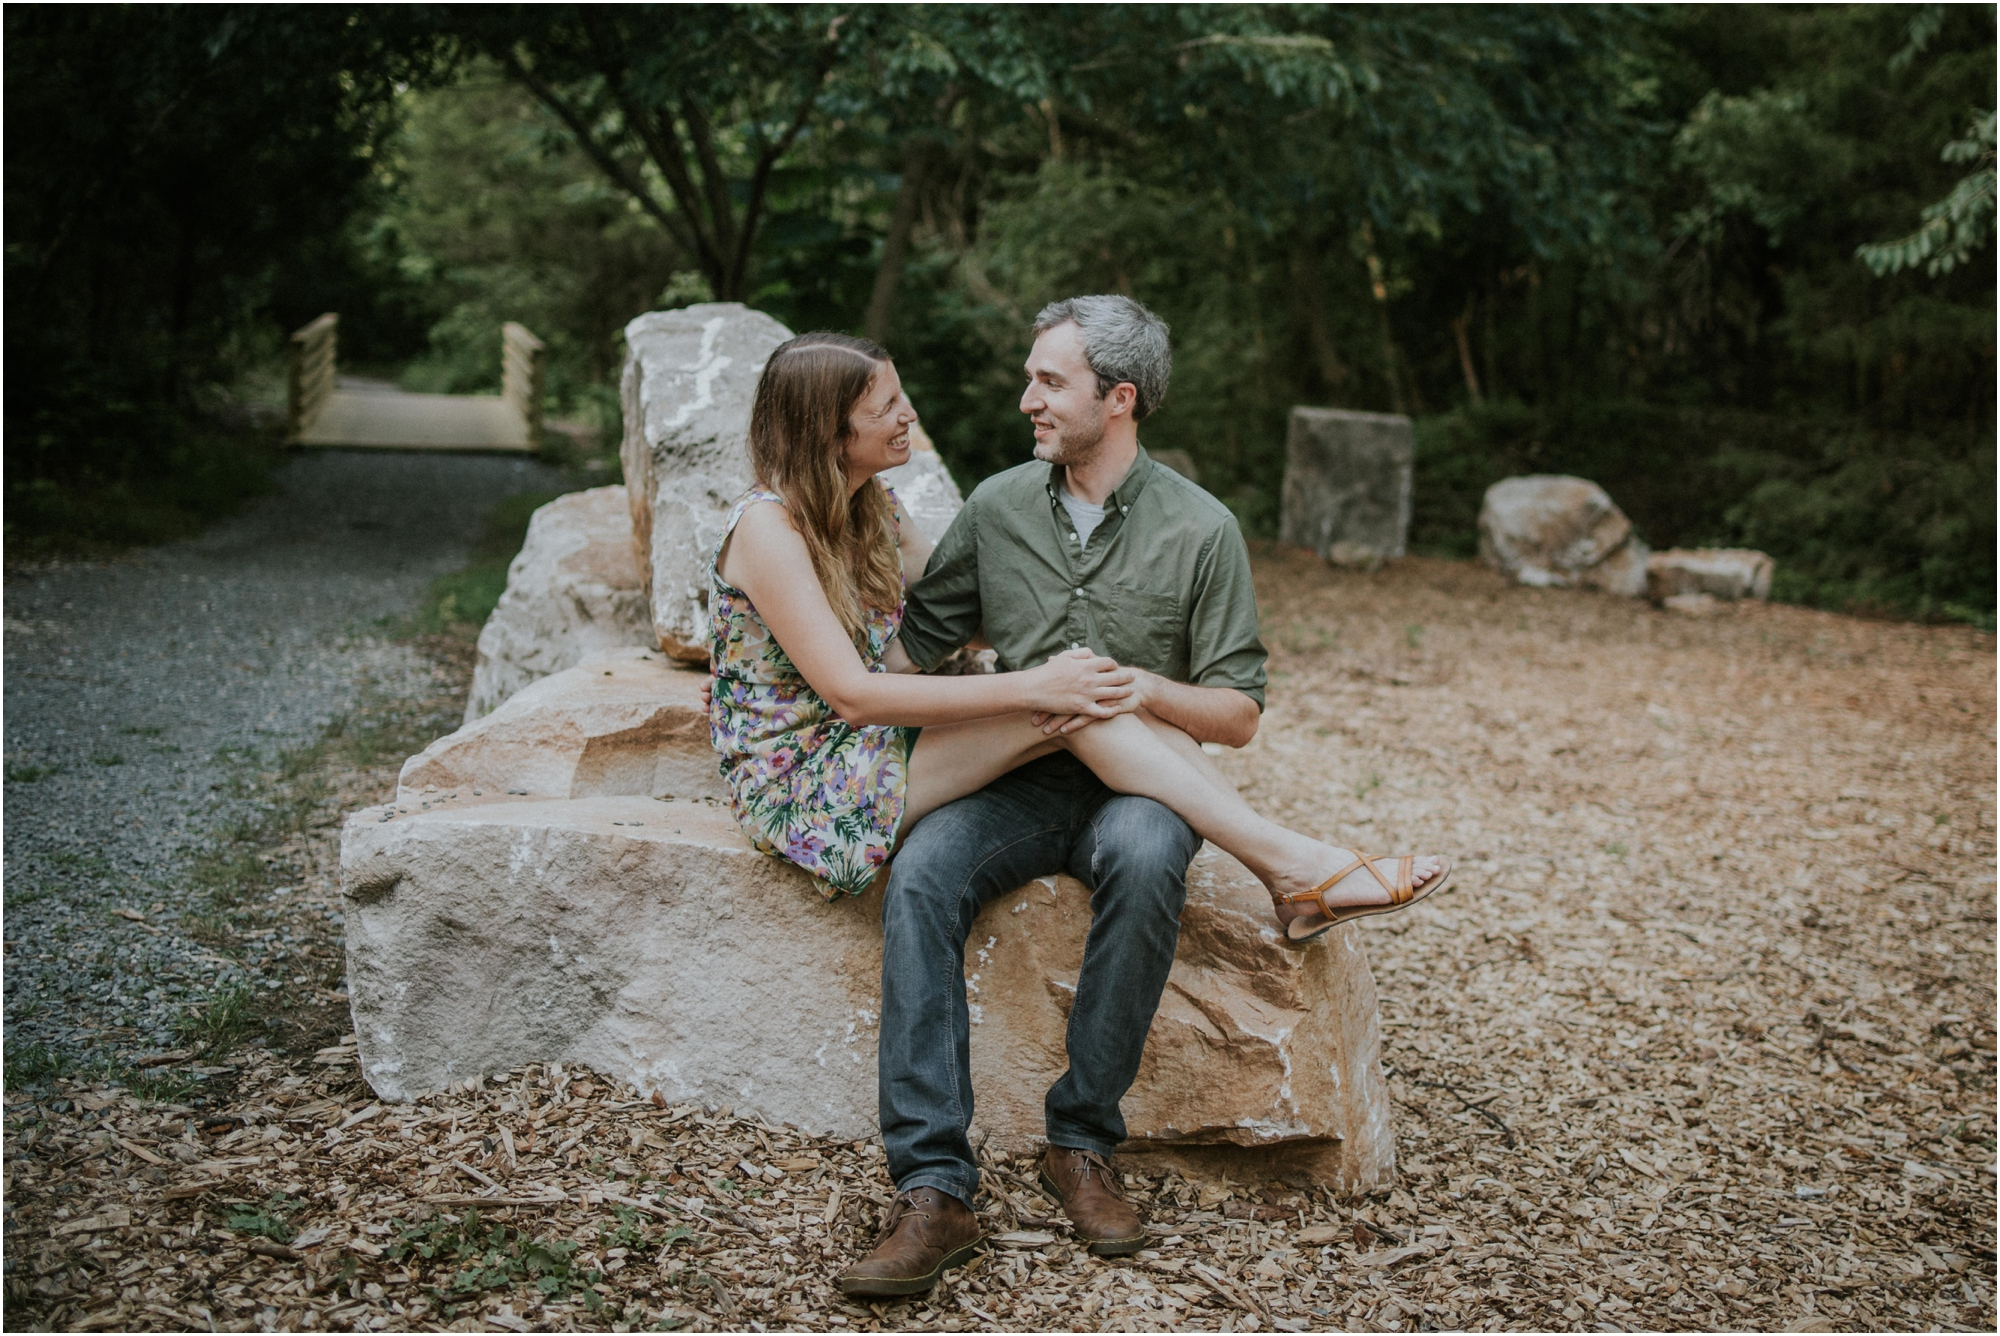 meads-quarry-ijams-nature-center-knoxville-tennessee-engagement-session-summer-northeast-tn-adventurous-outdoors-lake-katy-sergent_0013.jpg